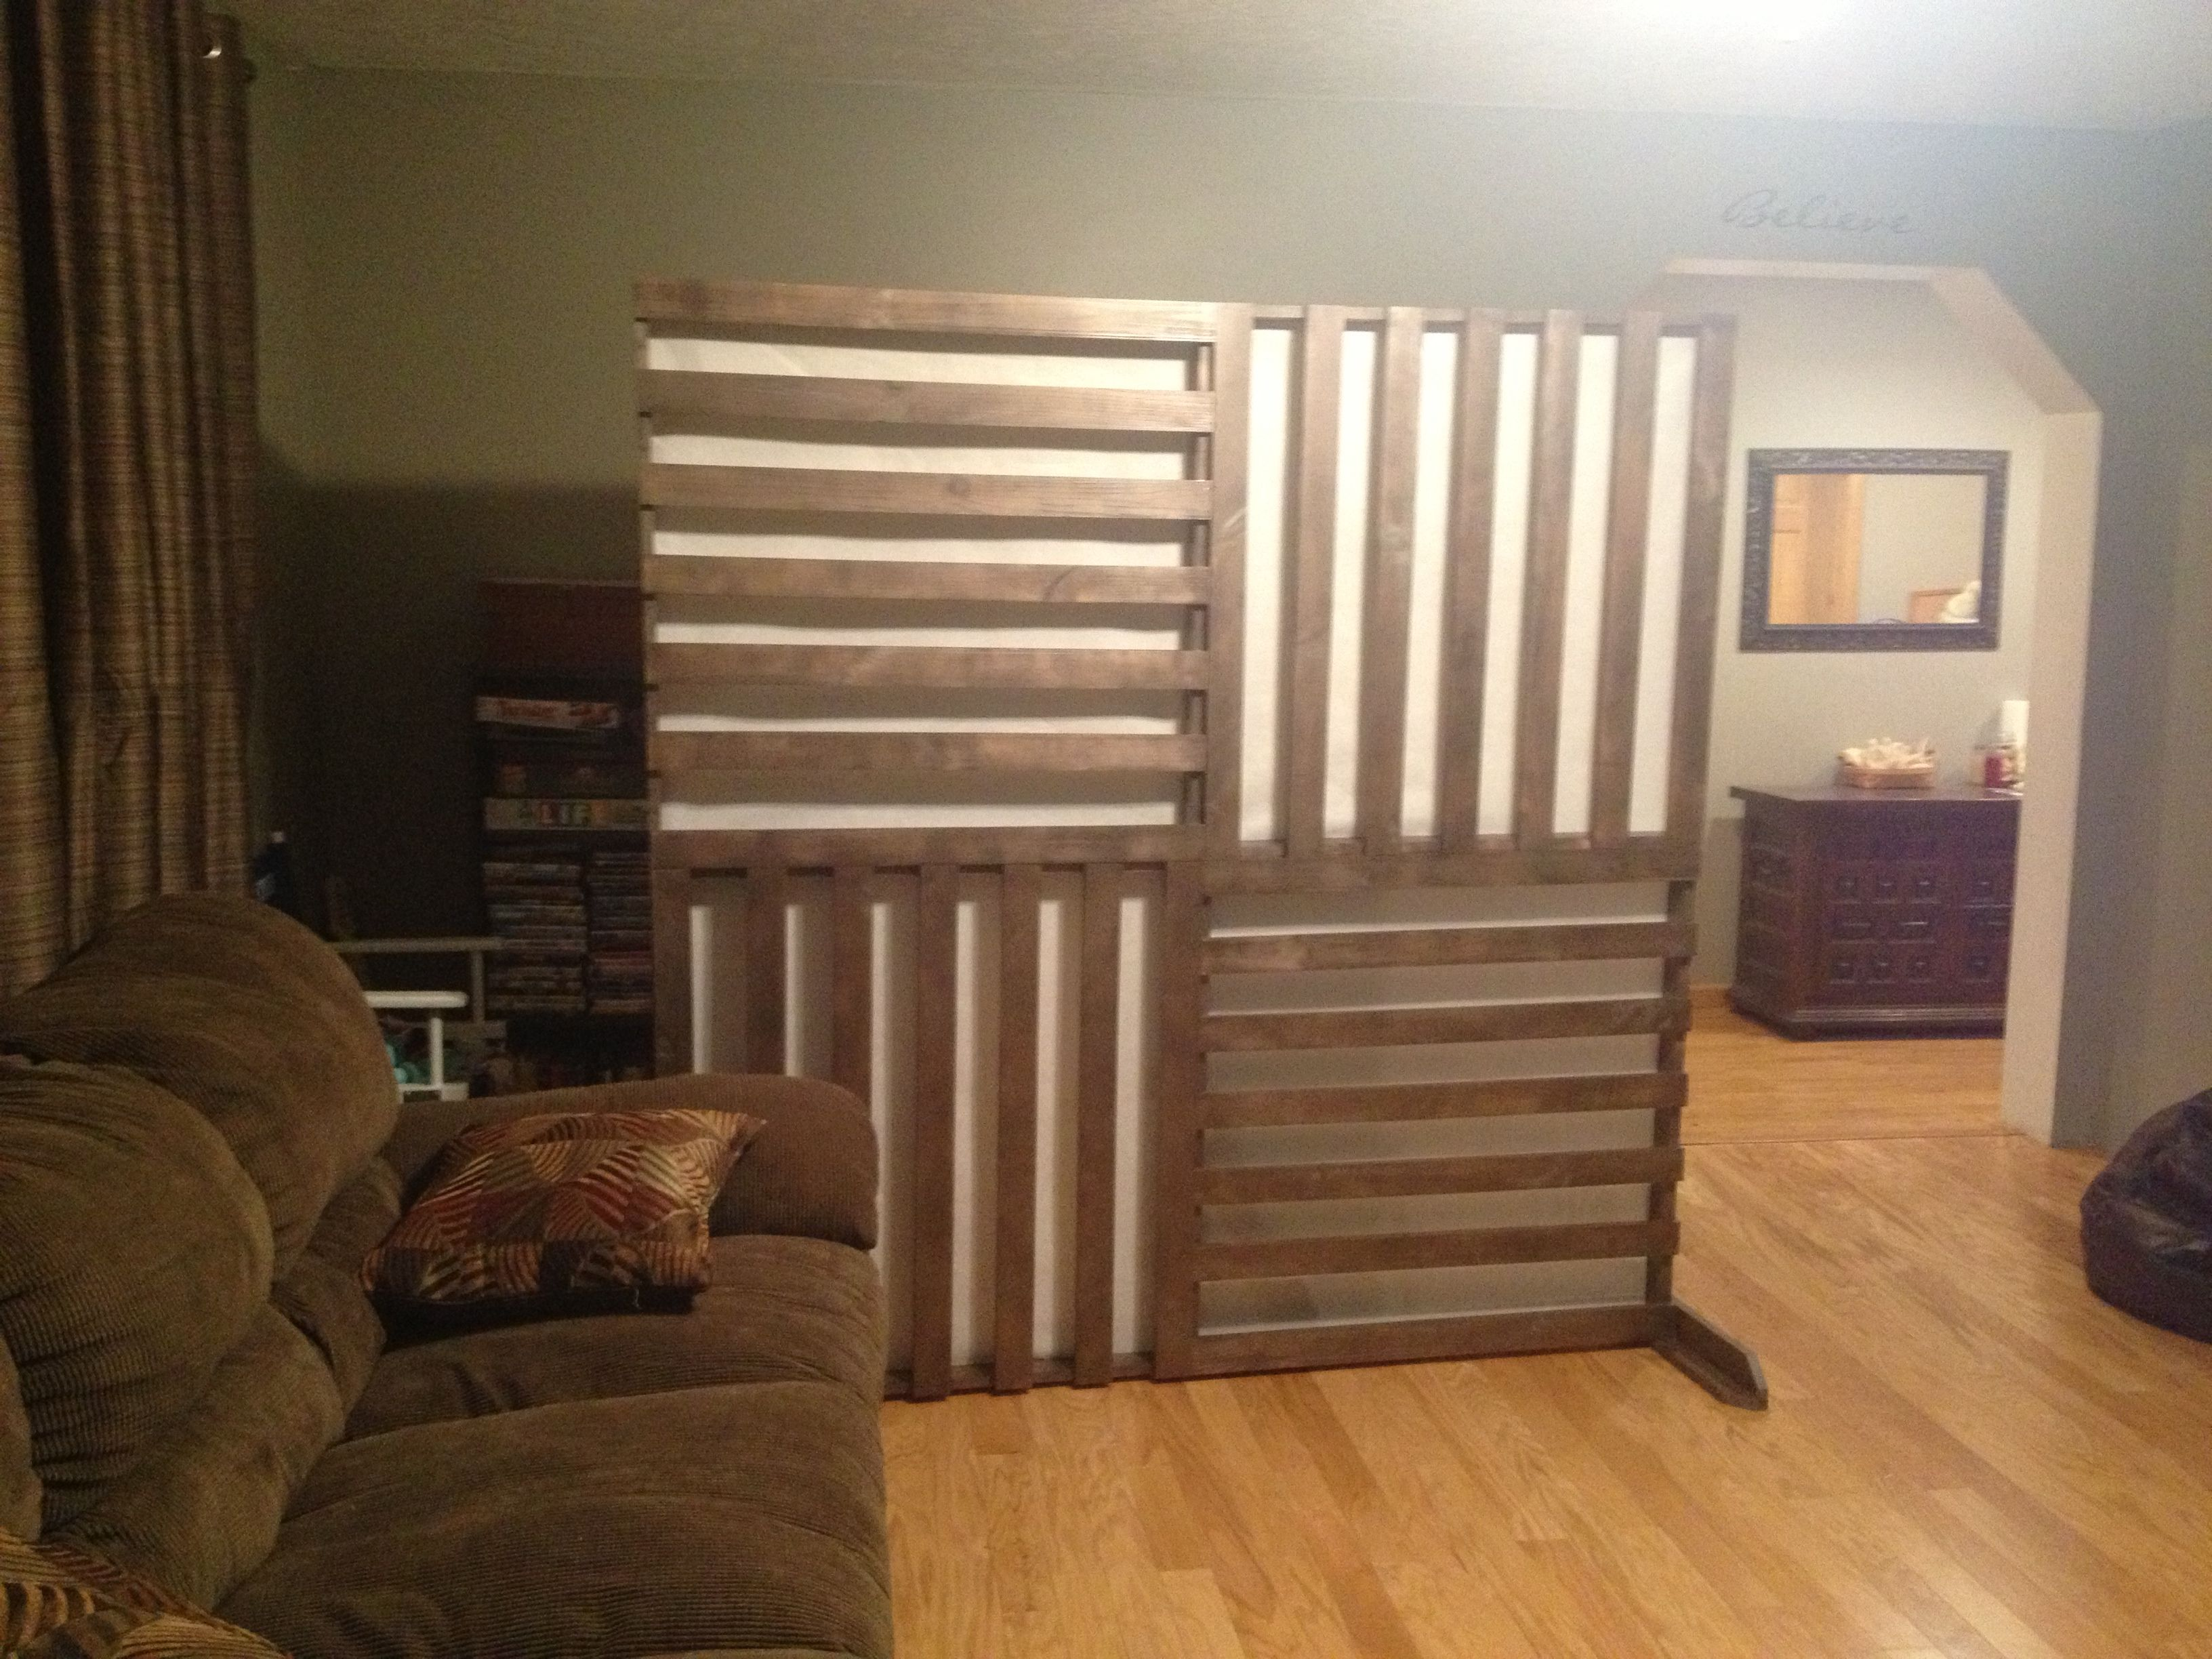 Diy Wall Divider Screen Pallet Inspired With Rice Paper